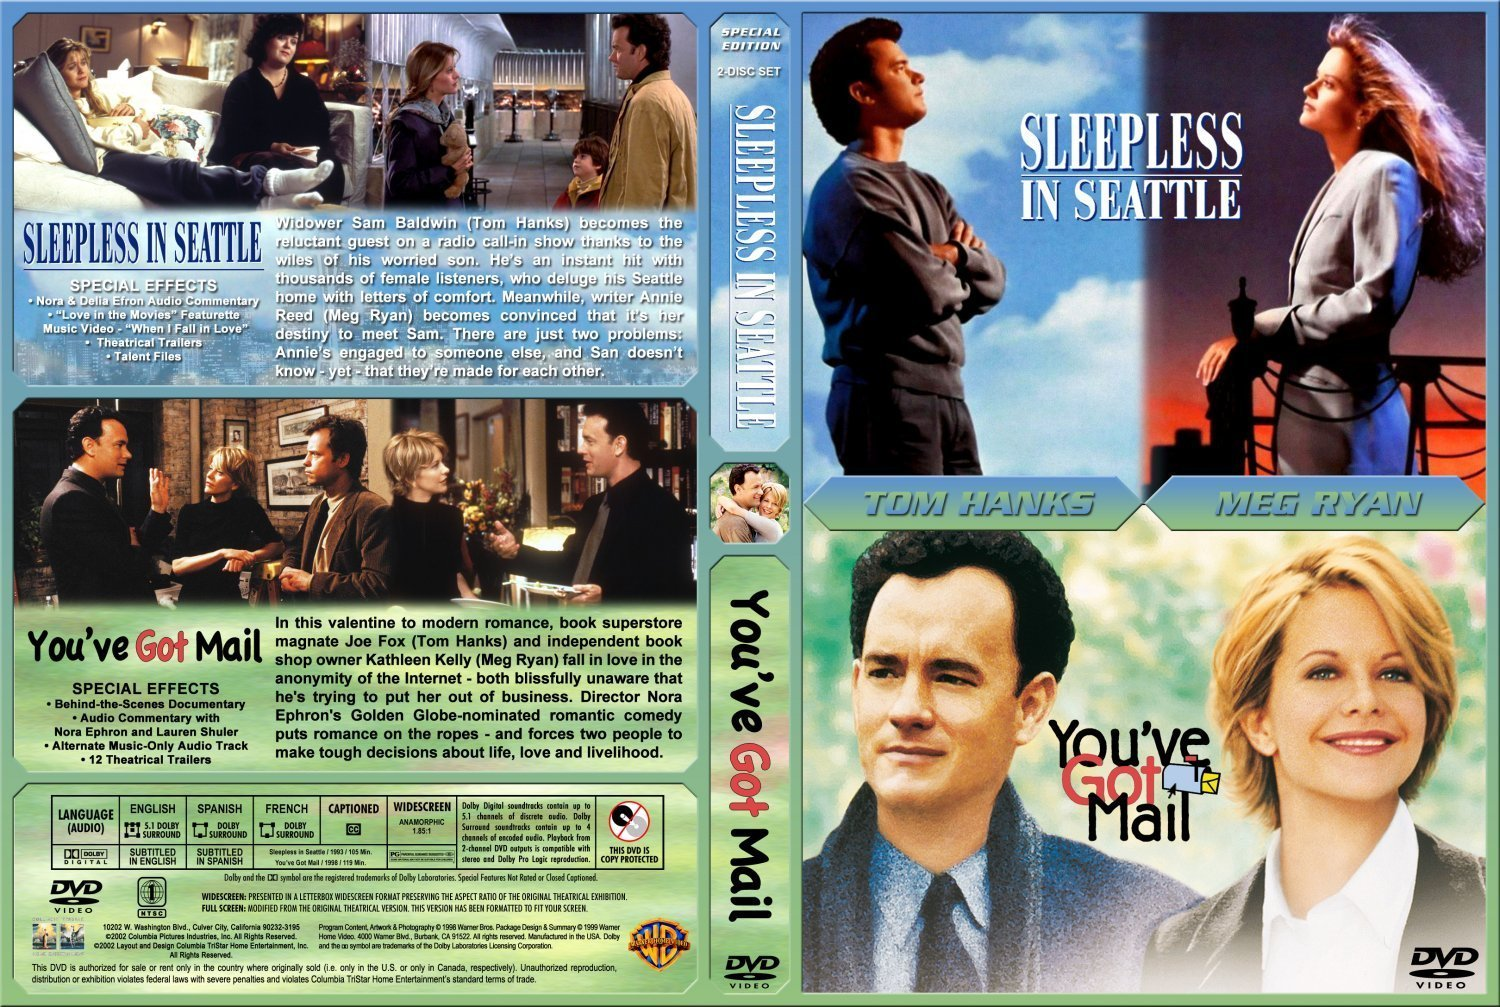 an analysis of the use of communication technology in the movie youve got mail directed by nora ephr